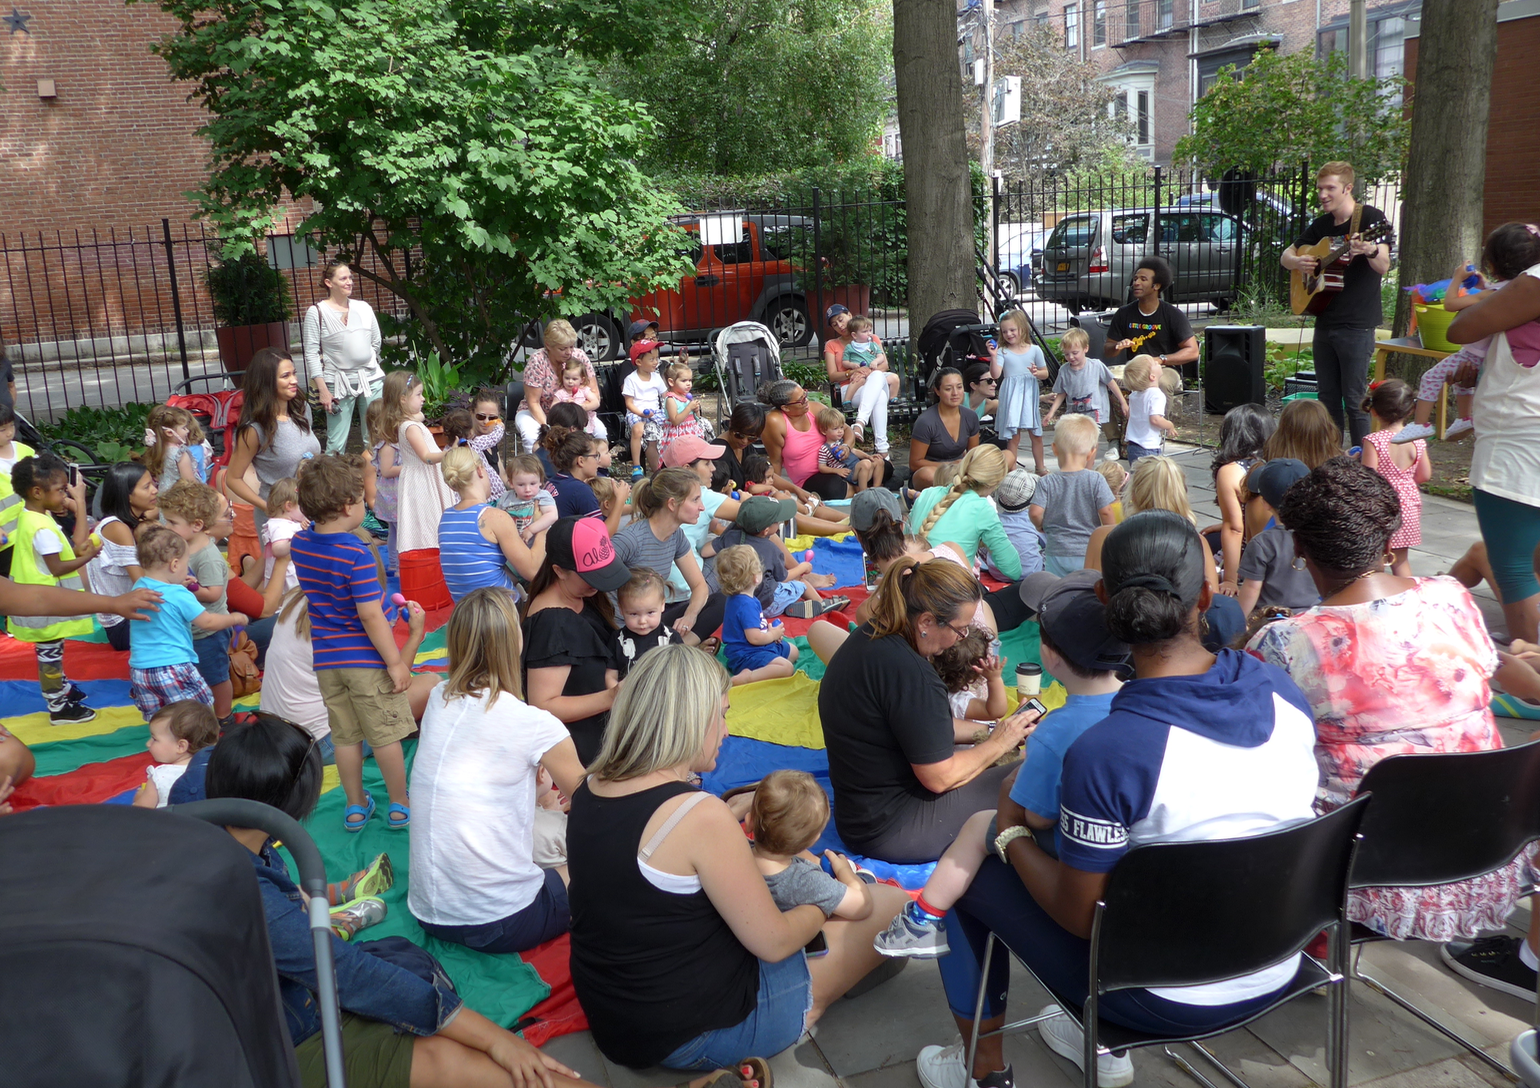 The Friends support children's programming, some held in Library Park